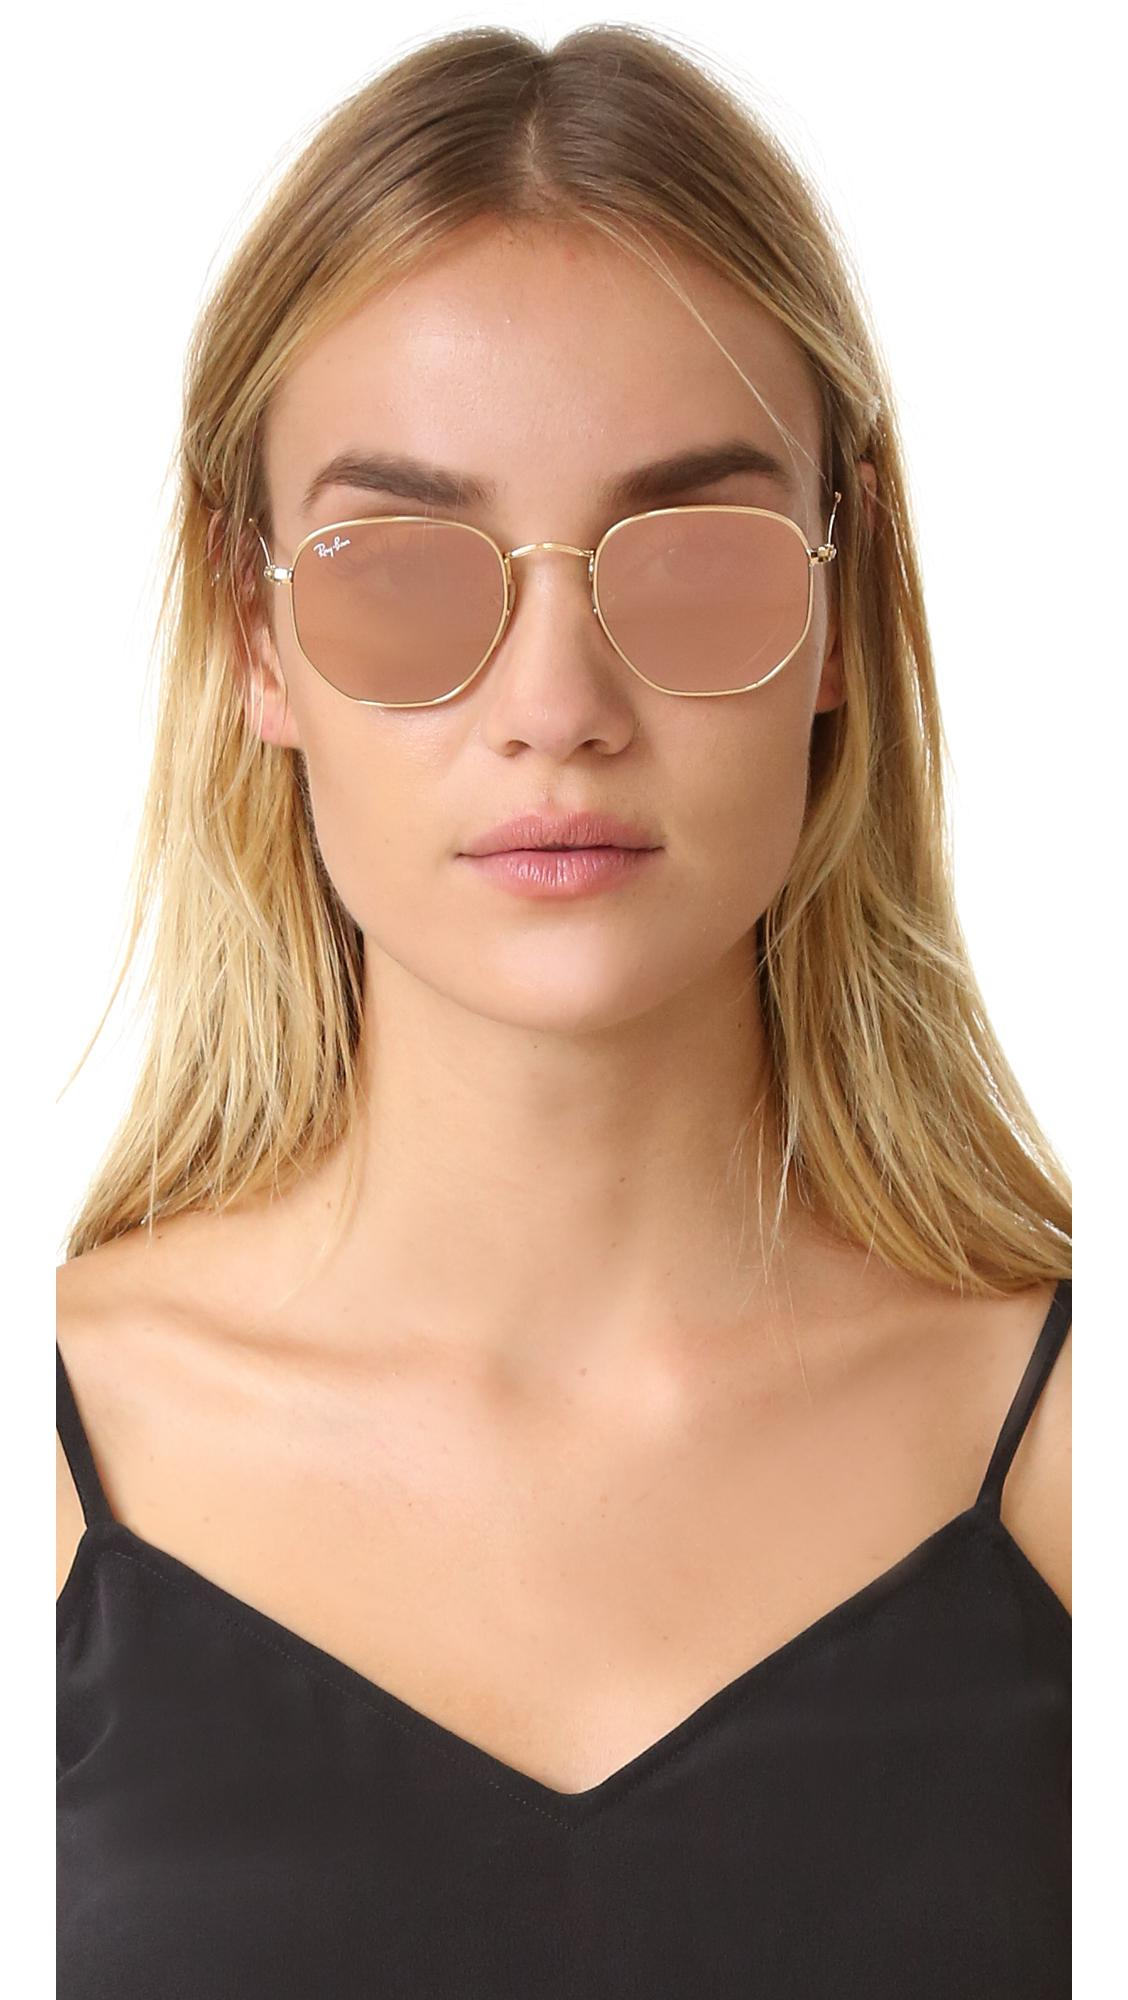 92dbed98ba9 Ray-Ban - Multicolor Octagon Mirrored Sunglasses - Lyst. View fullscreen